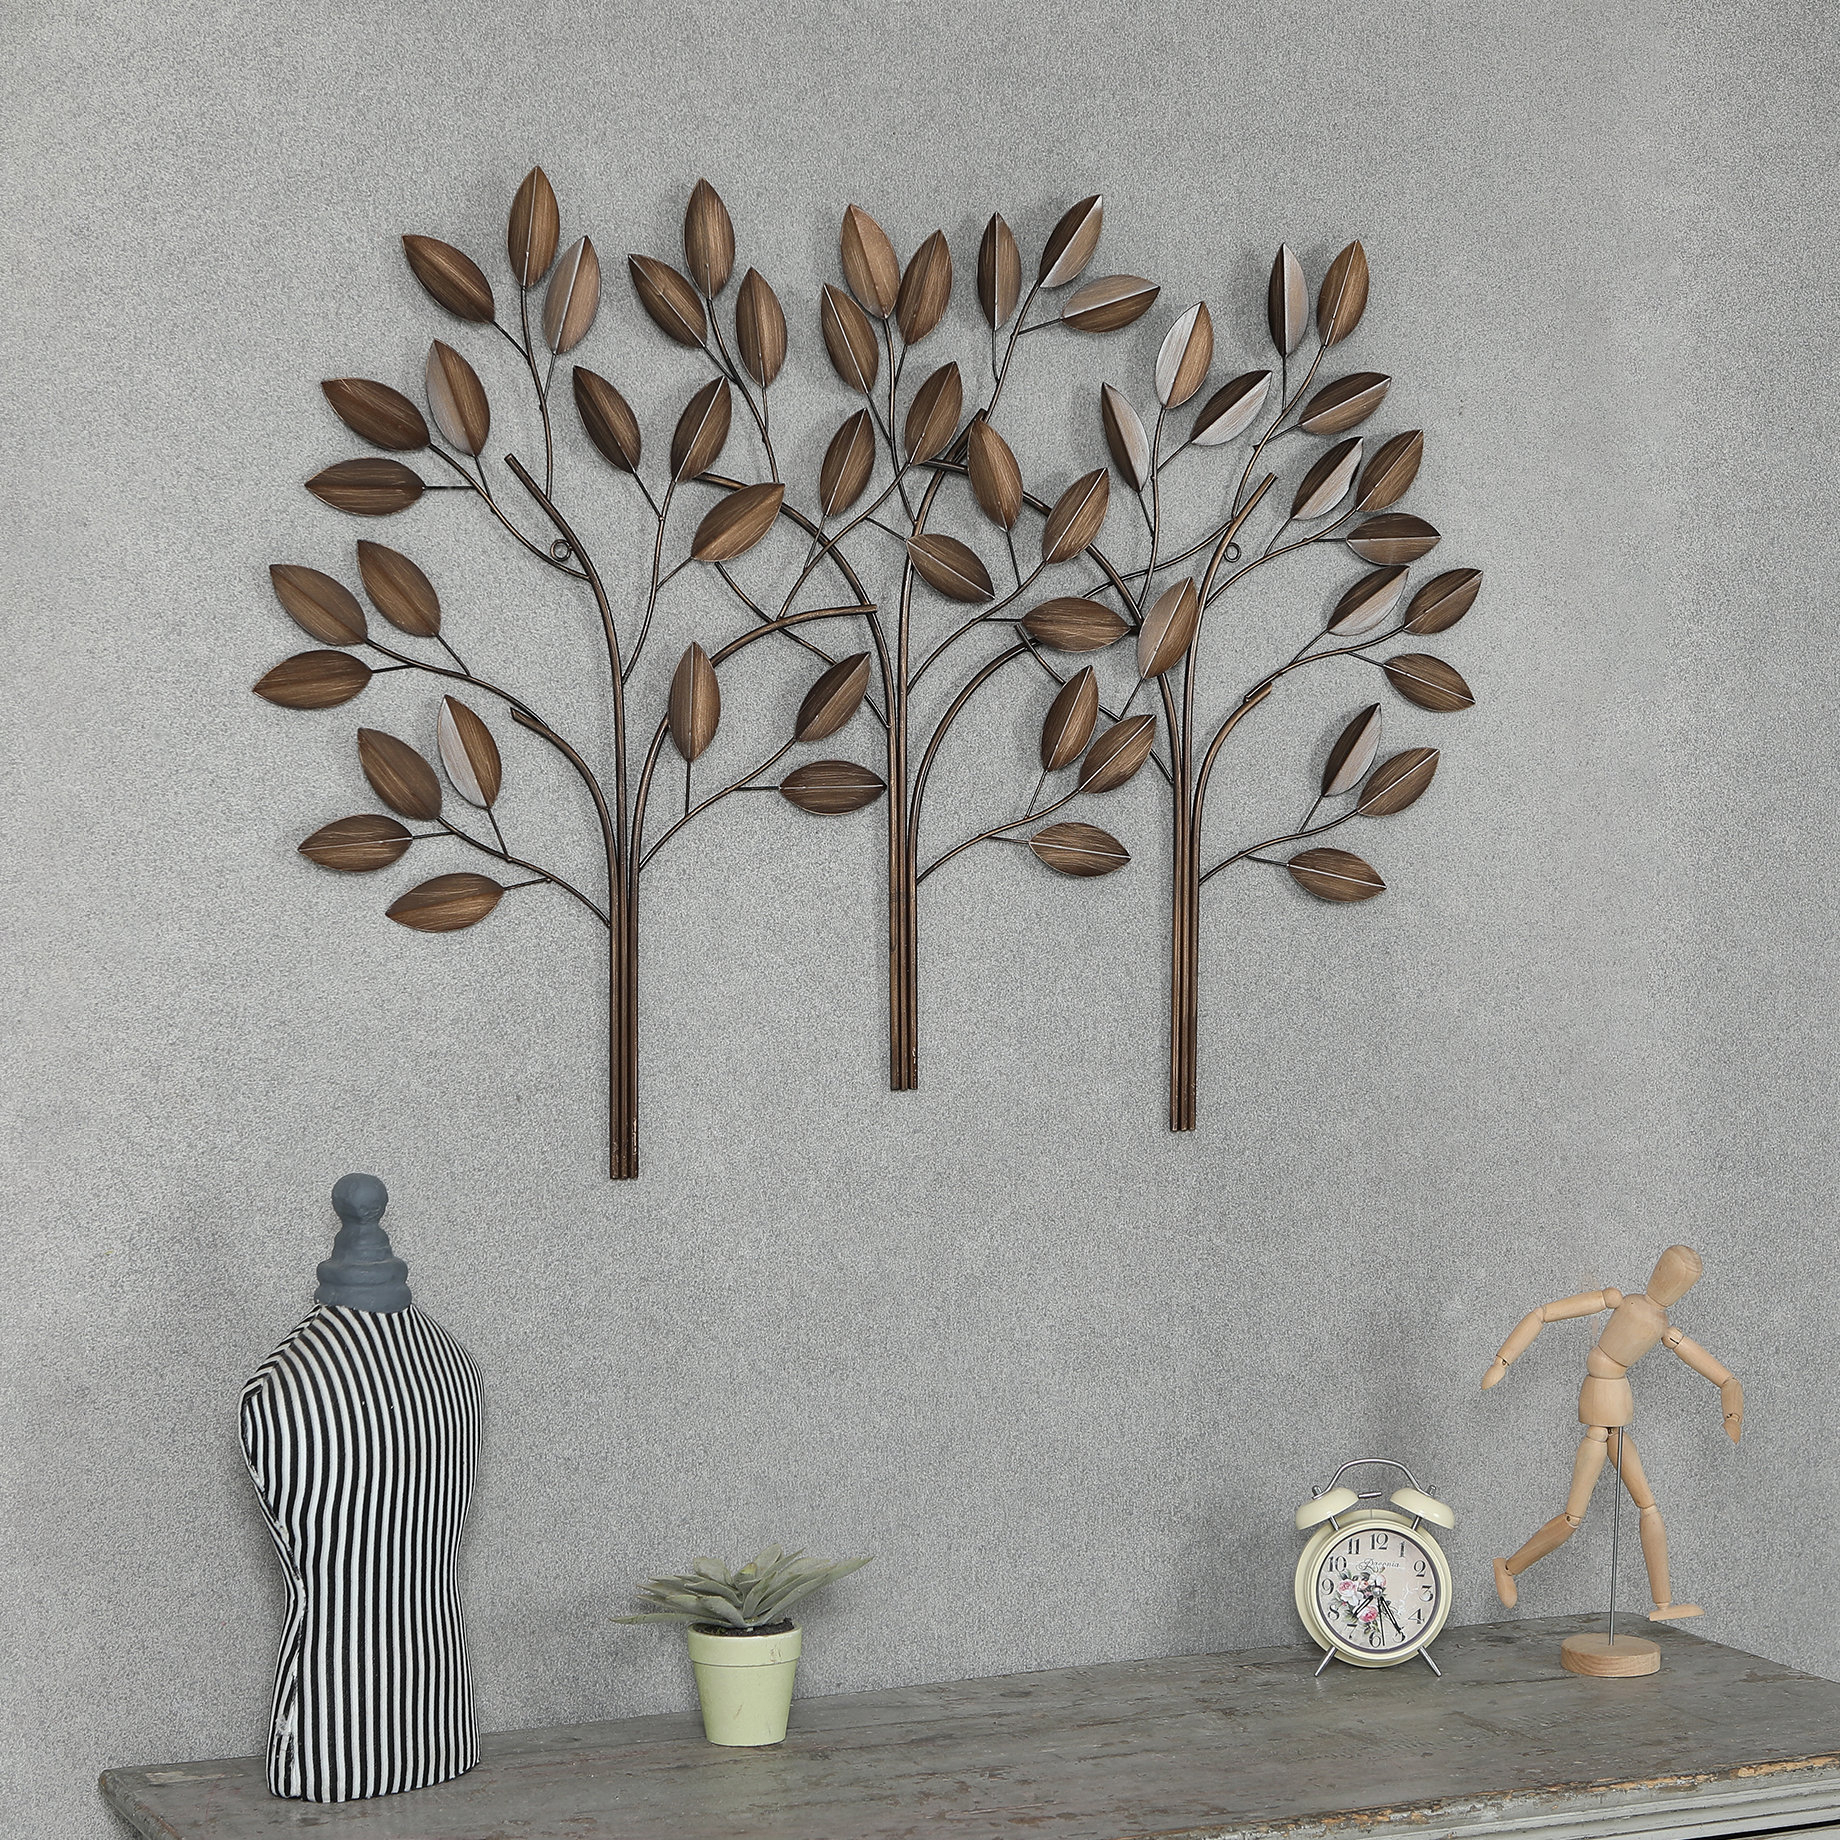 Wayfair Regarding Most Recently Released Leaves Metal Sculpture Wall Decor By Winston Porter (View 3 of 20)